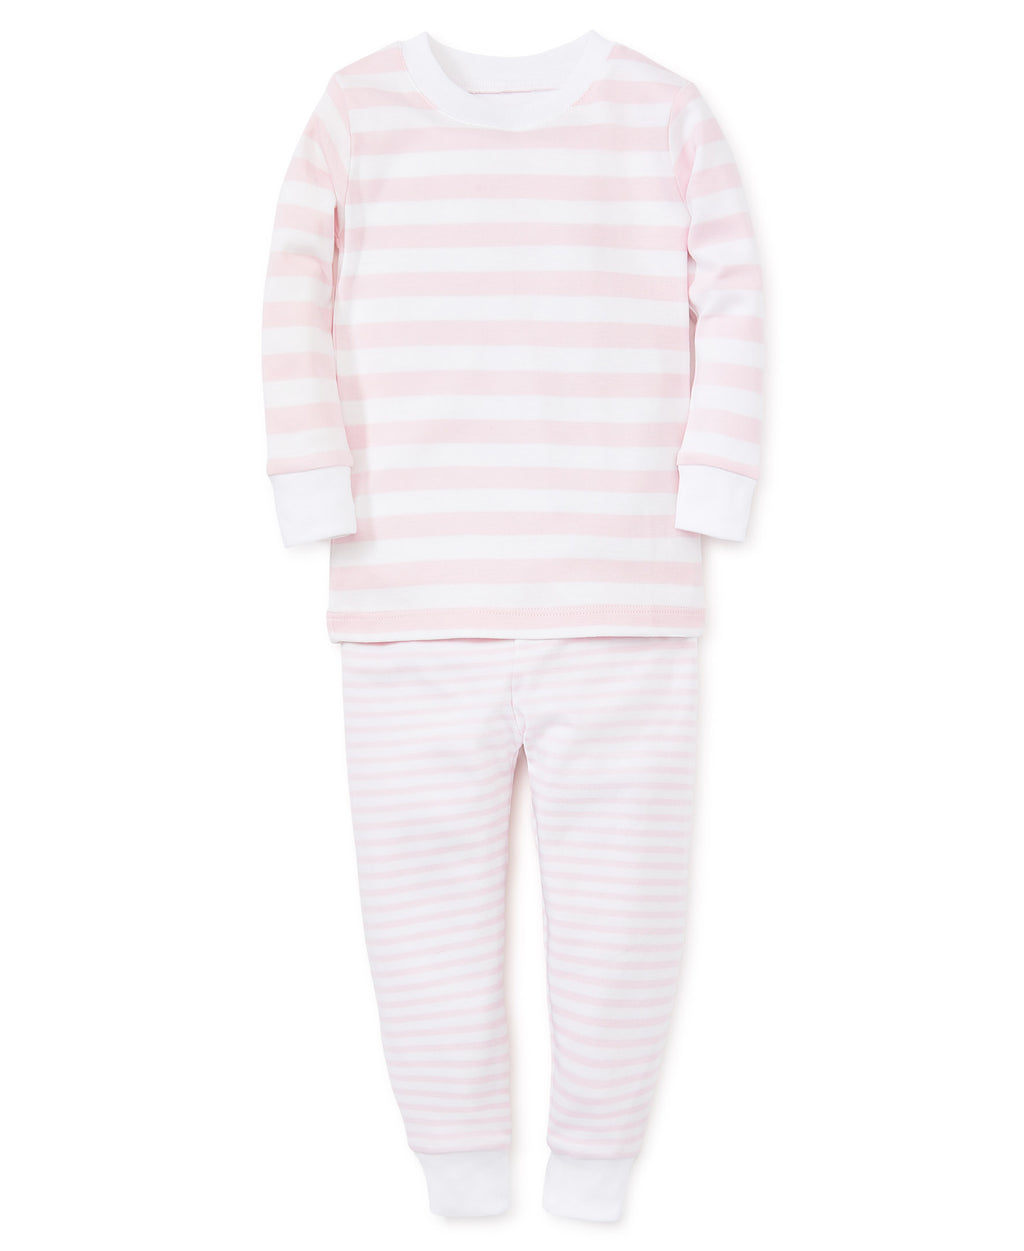 Pink Stripes Toddler Pajama Set